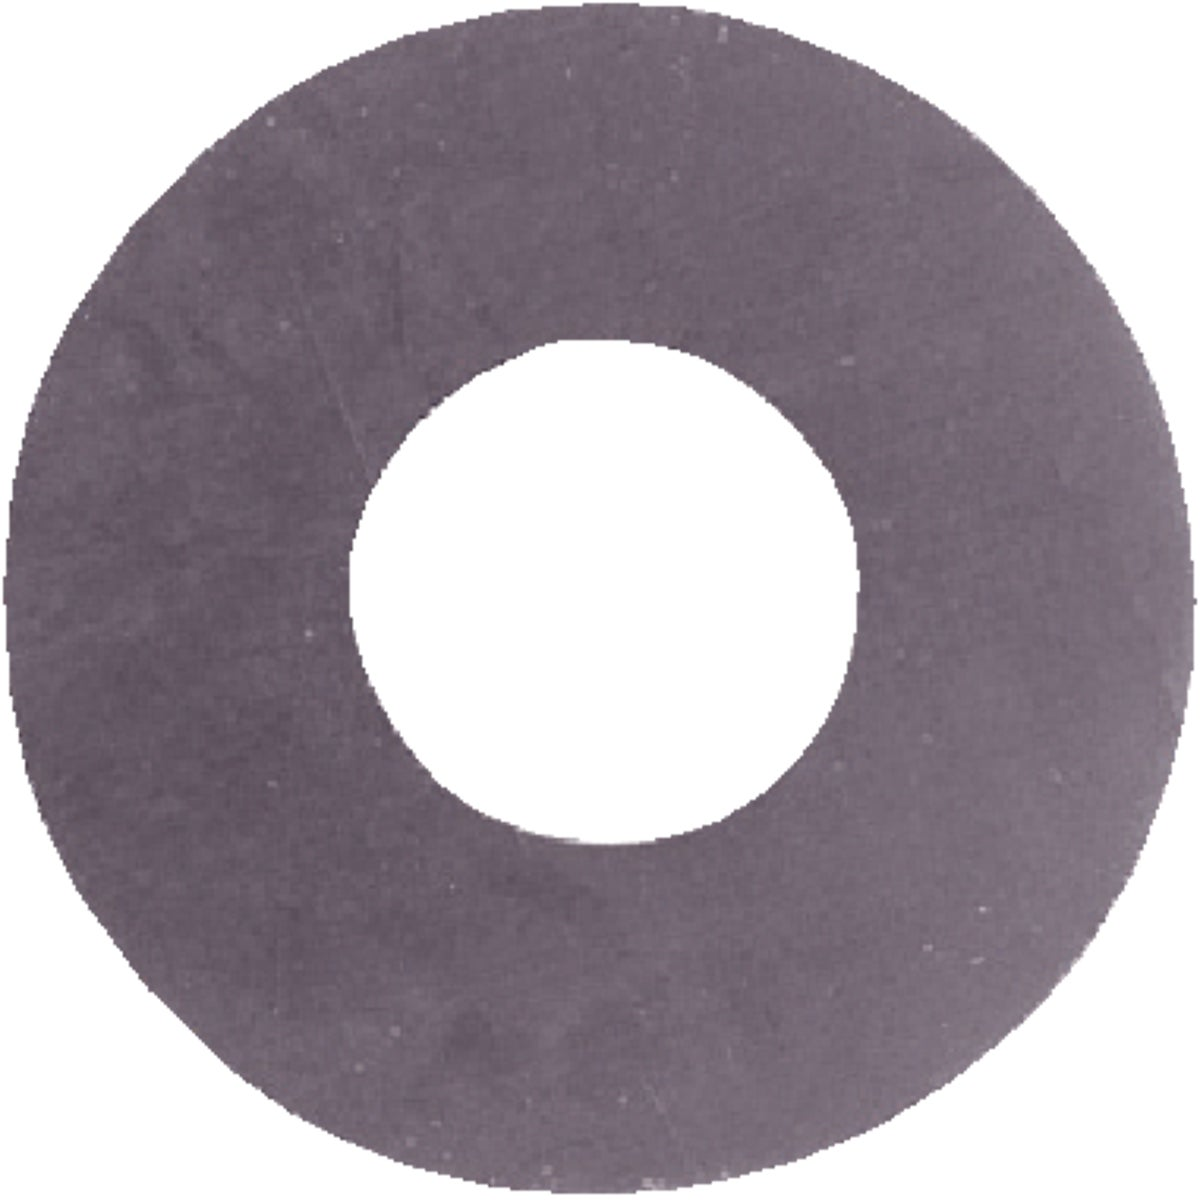 RUBBER BIBB GASKET - 35318B by Danco Perfect Match